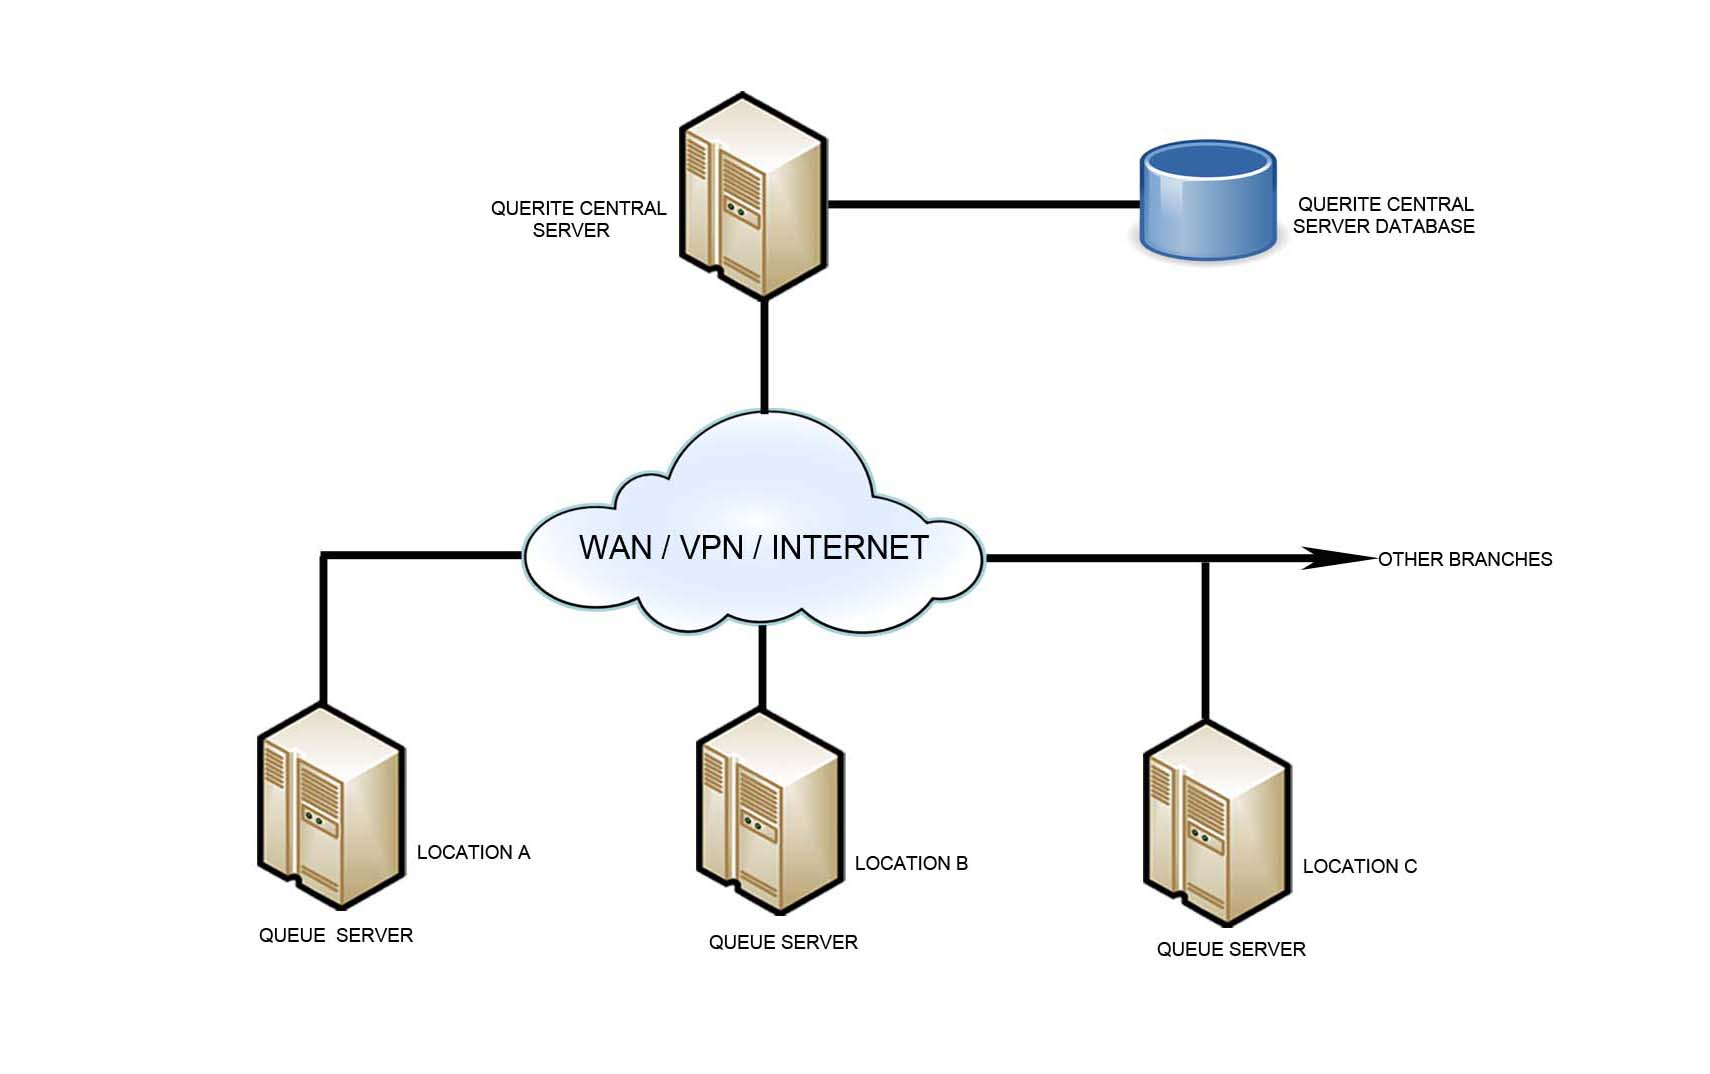 Network Diagram Using QueueRite Central Server